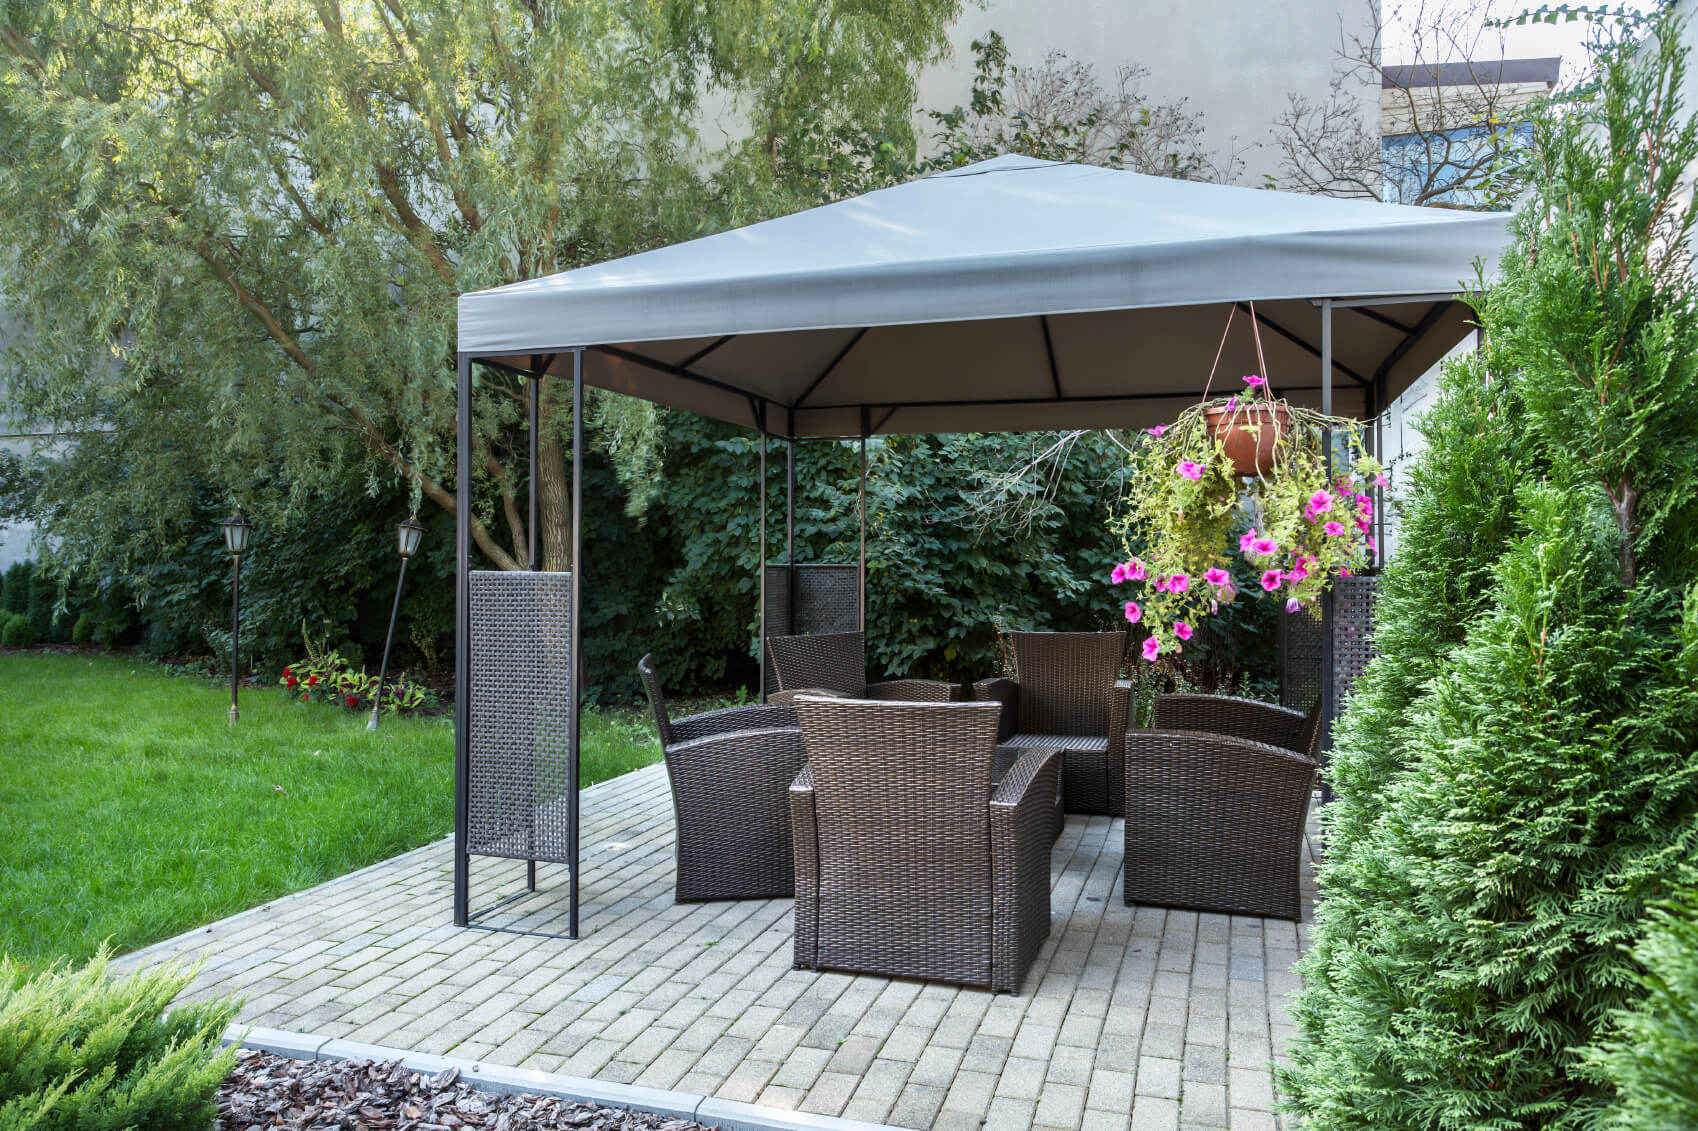 Steel Portable Gazebo : Portable gazebos that will keep the bugs out